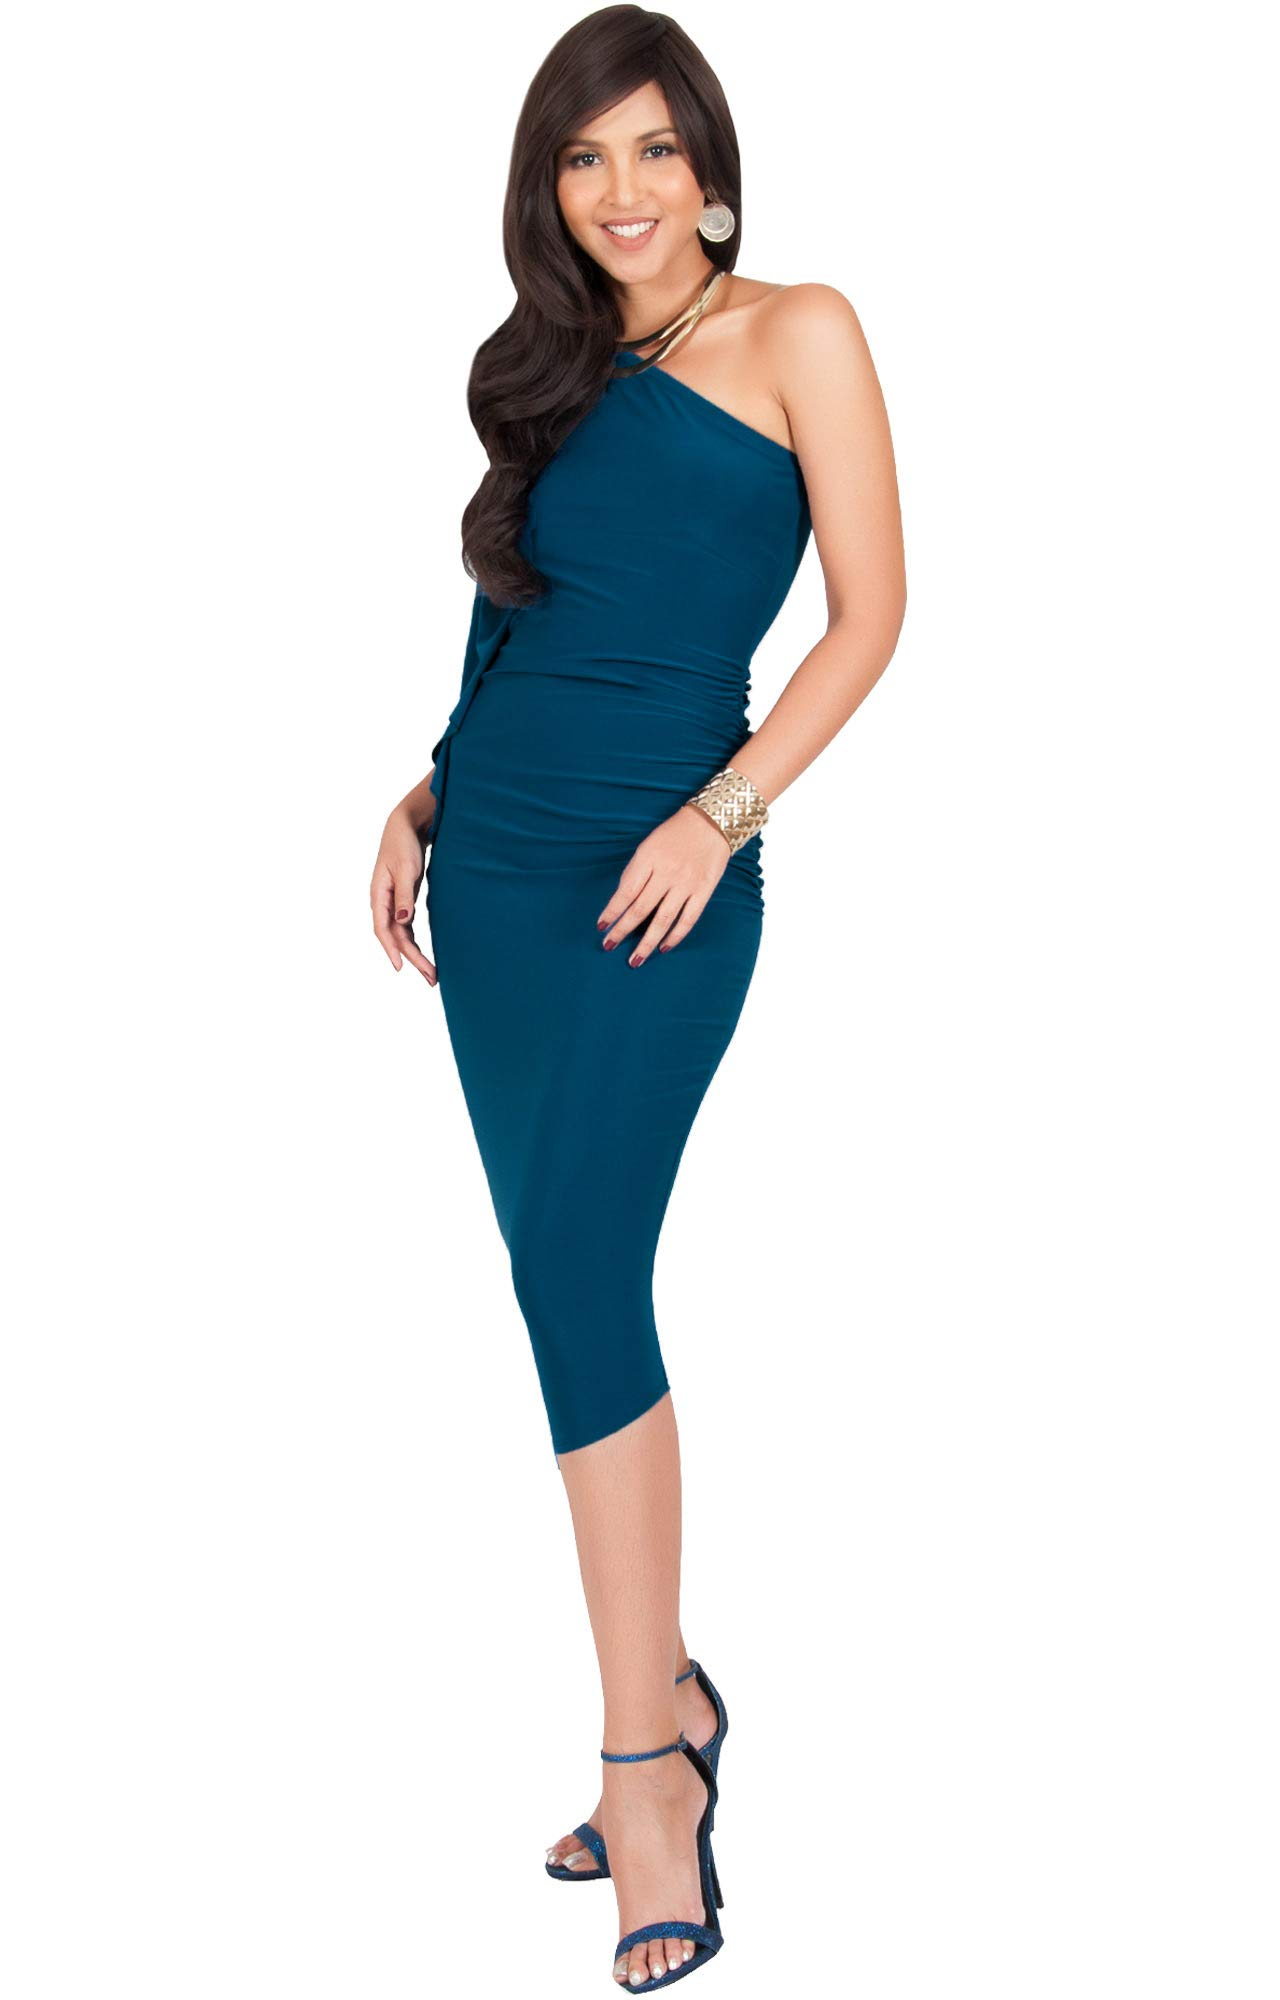 014abdb56a Galleon - KOH KOH Petite Womens One Off The Shoulder Sexy Long Formal  Cocktail Bridesmaid Evening Elegant Wedding Guest Night Party Summer Sun  Midi Dress ...